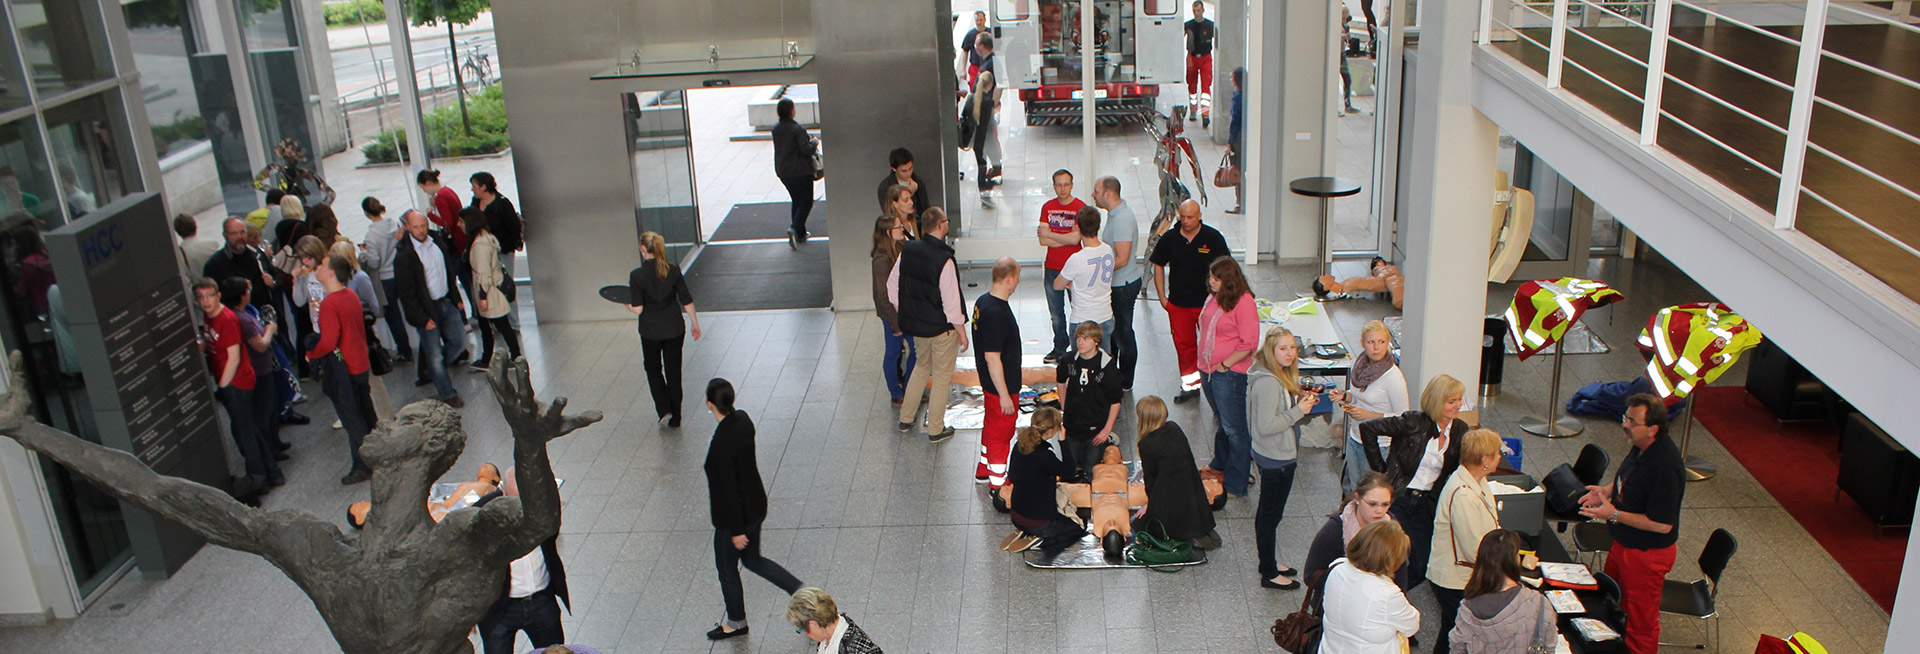 Presse - Ambulantes OP-Zentrum